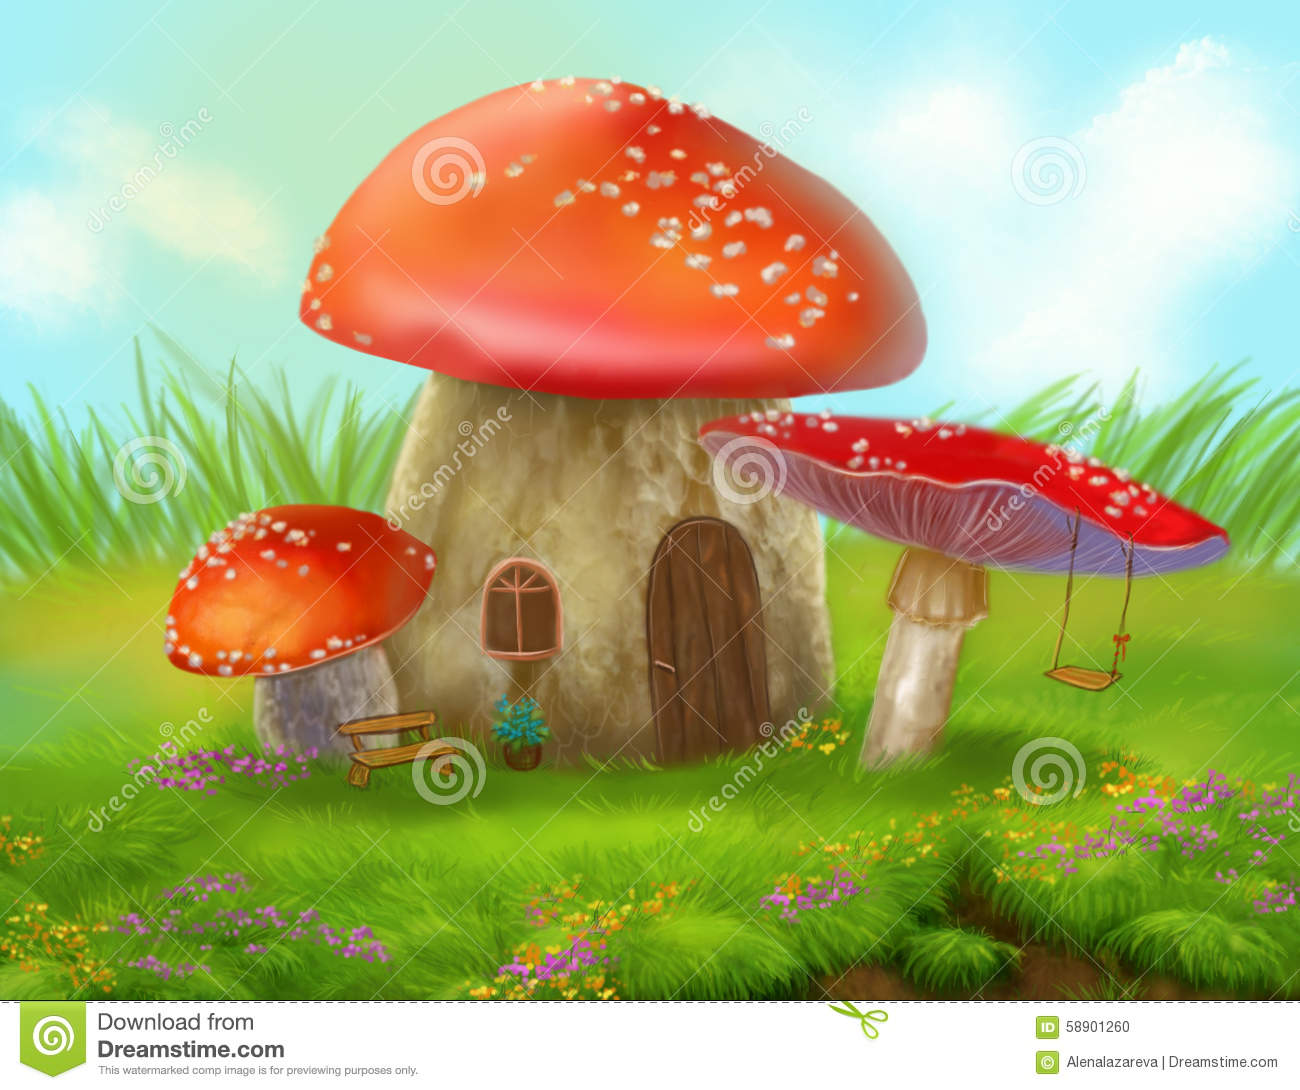 Fantasy Mushroom Cottage House On A Colorful Meadow Stock.